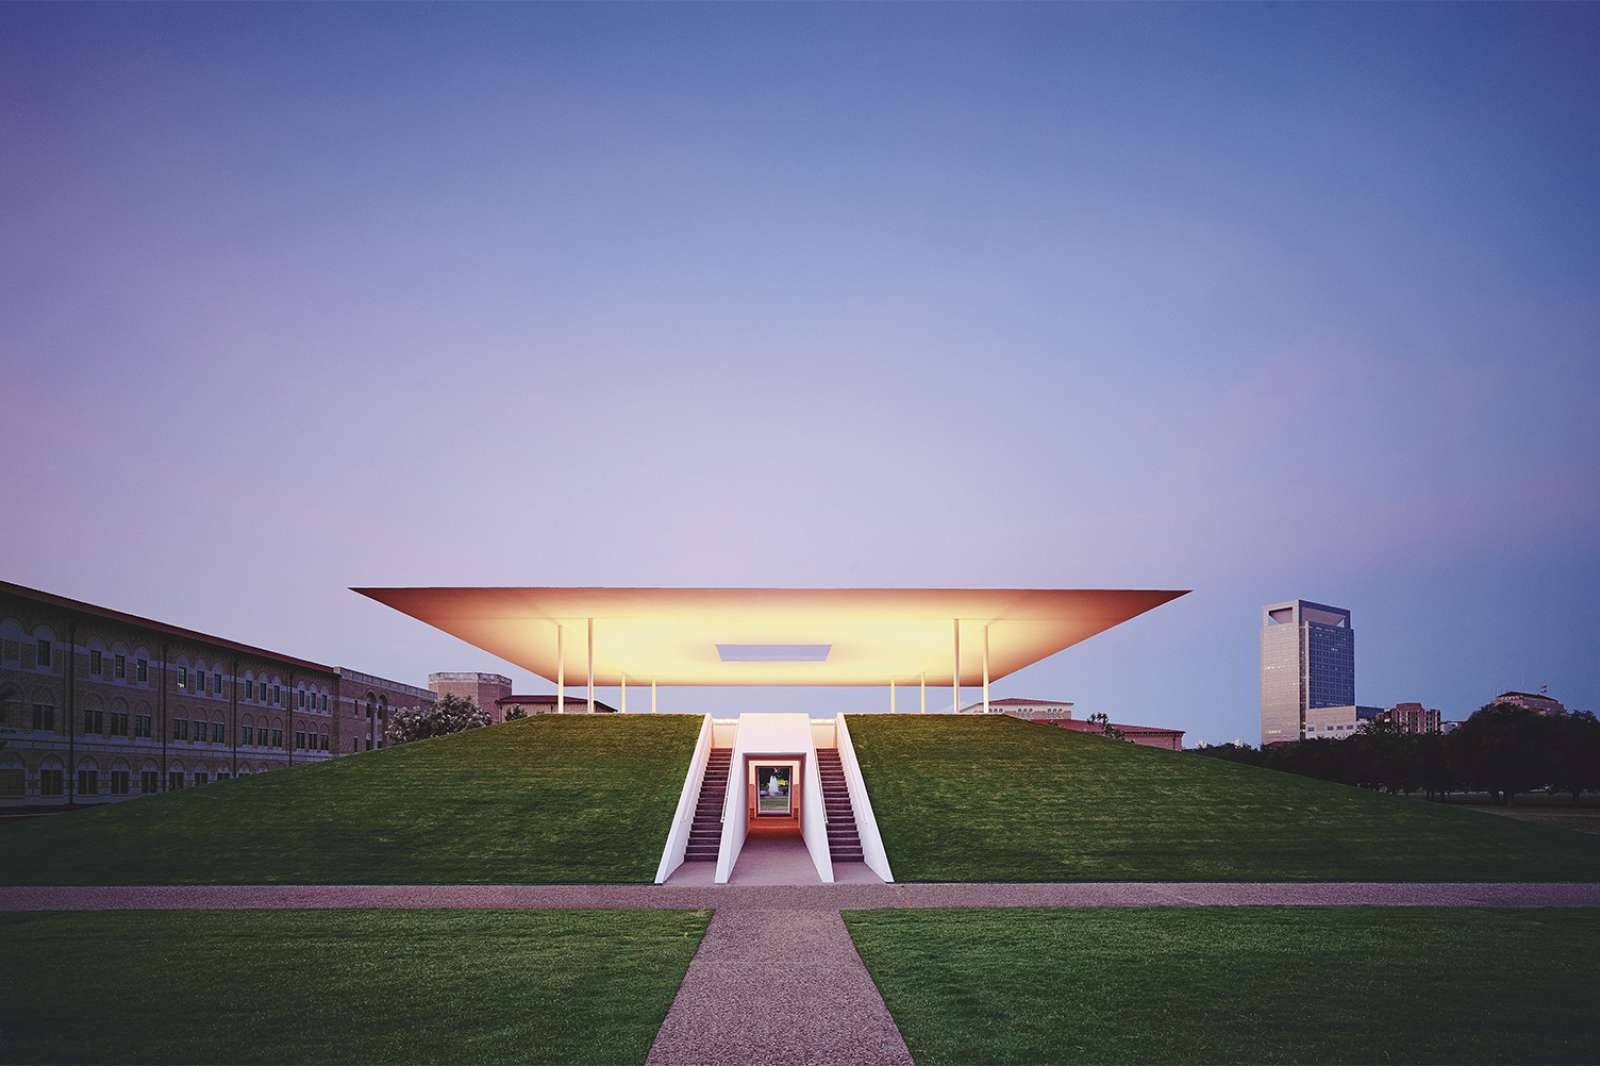 Twilight Epiphany (2012), The James Turrell Skyspace at the Suzanne Deal Booth Centennial Pavilion at Rice University. Photo: Florian Holzherr. Image courtesy Rice University.